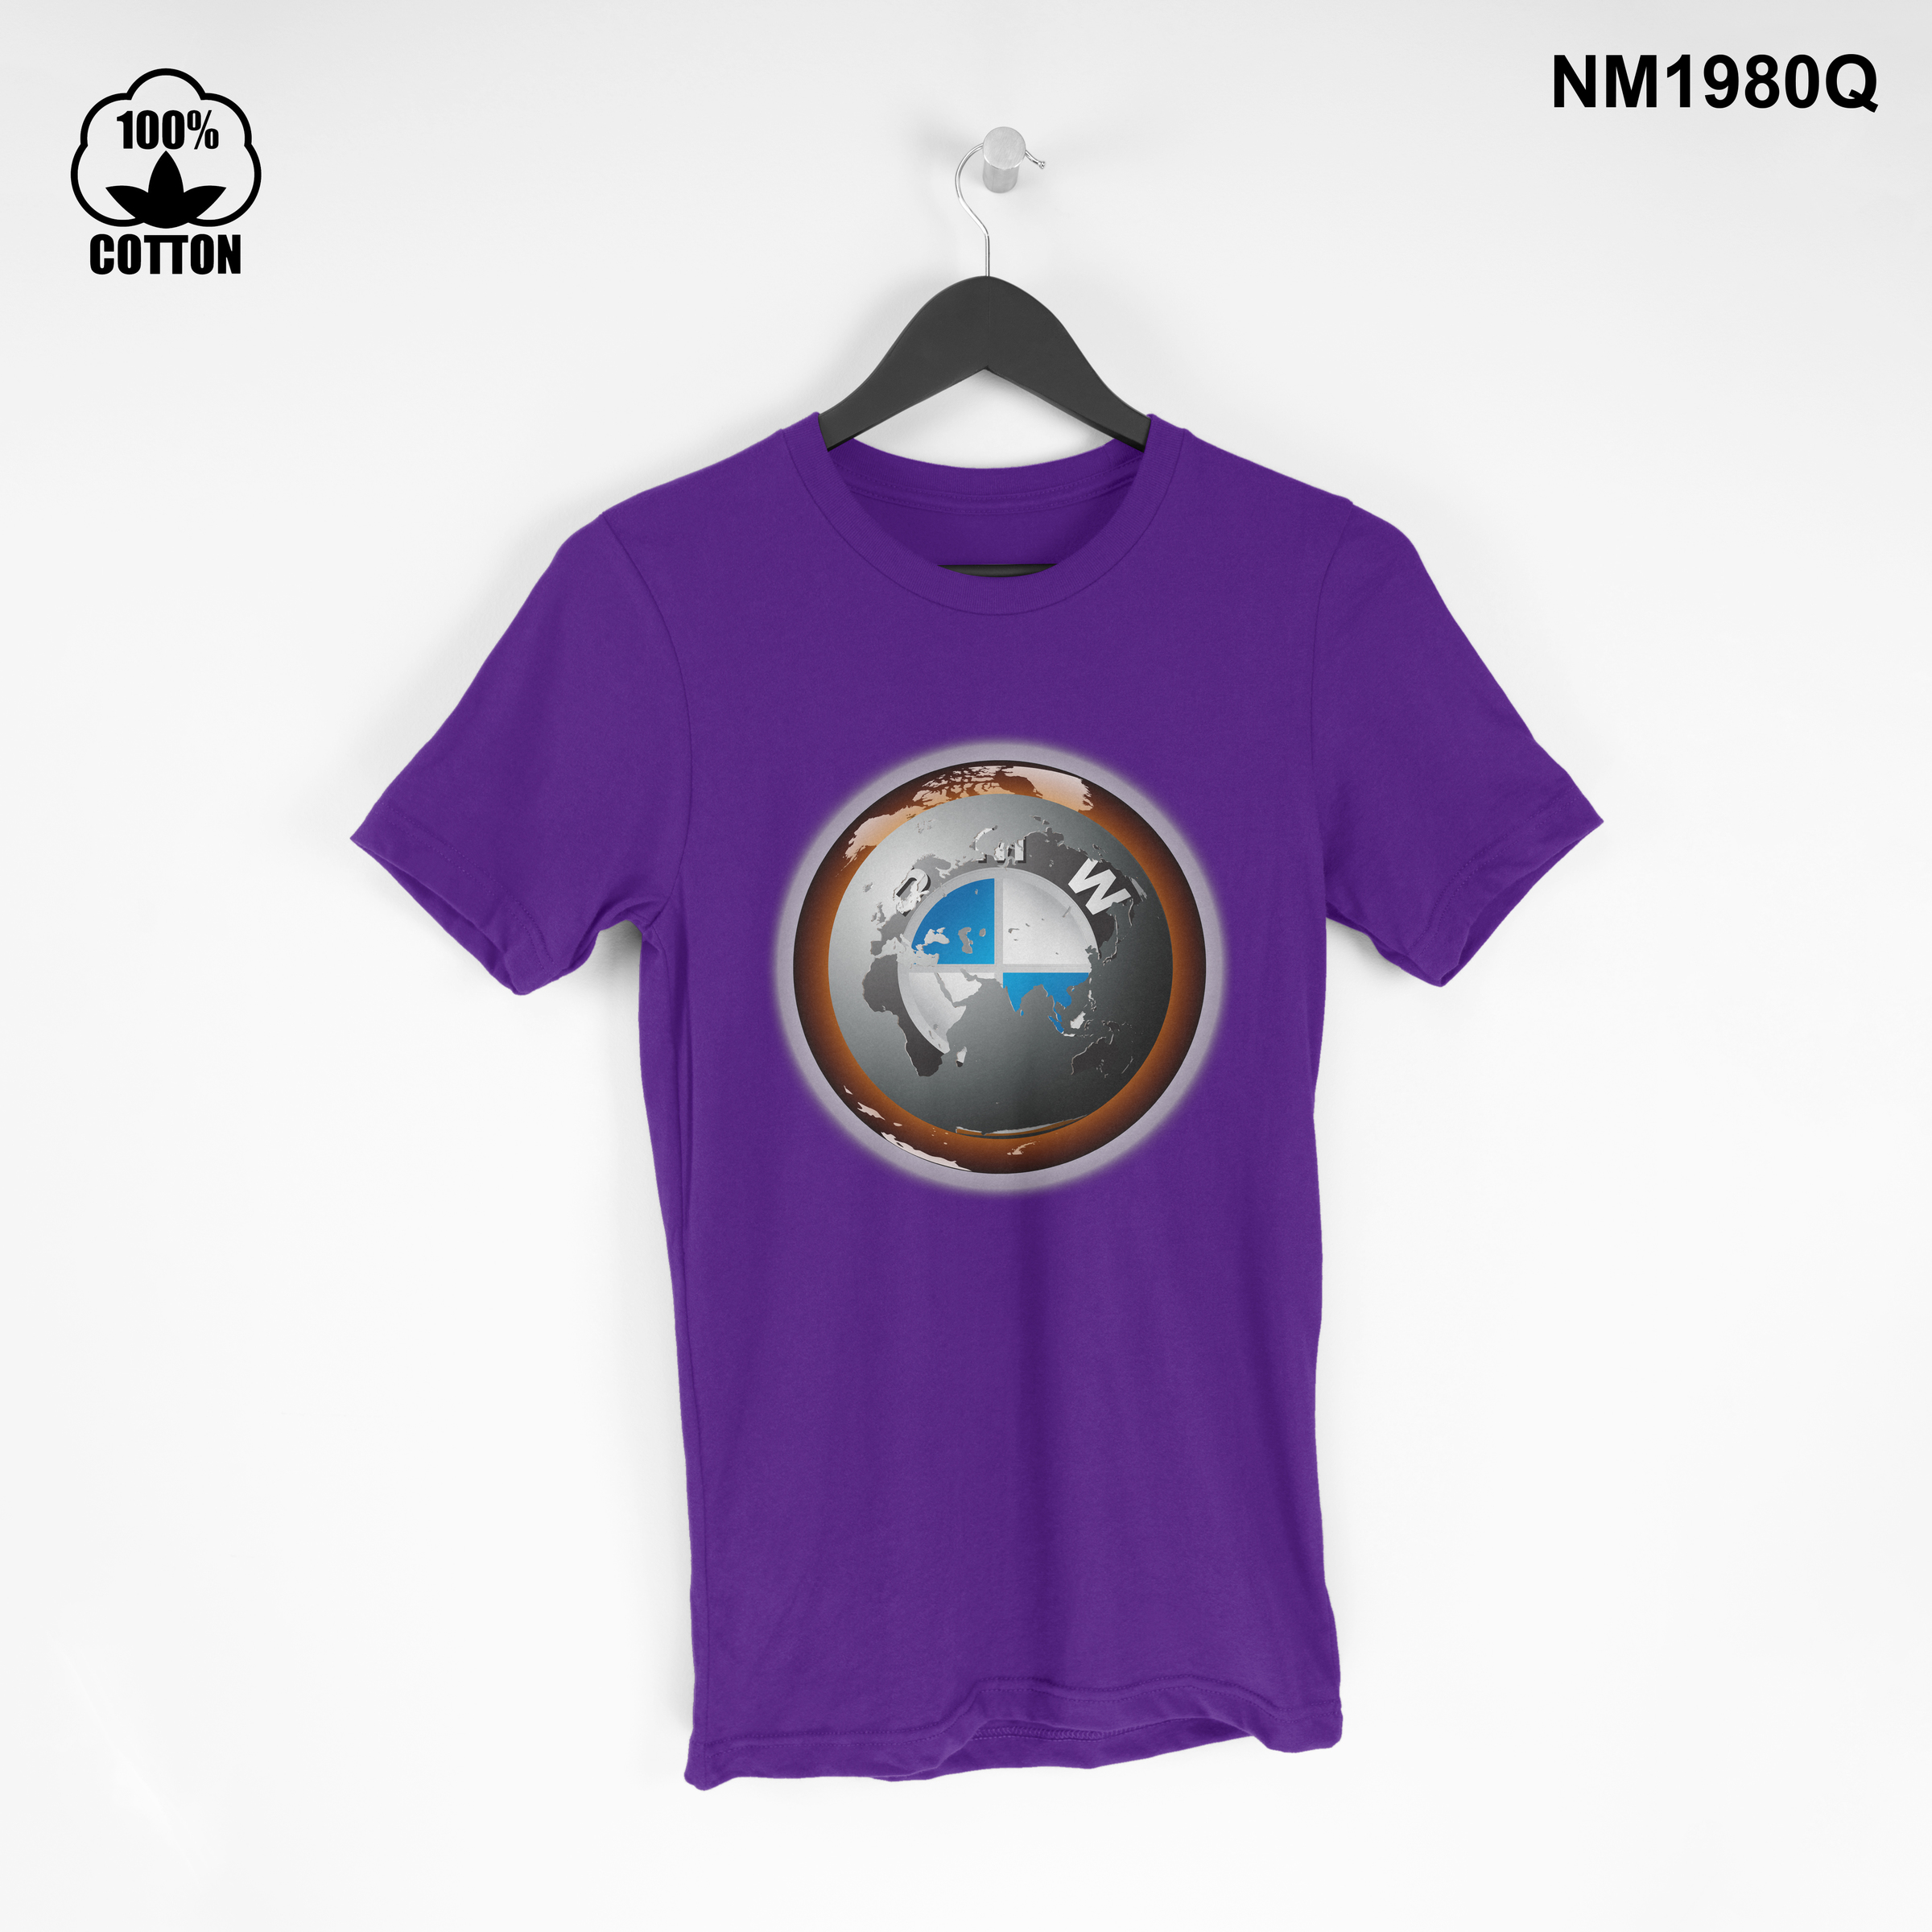 1.31 new item 2019 bmw in the world t Shirt Tee Unisex blue violet.jpg